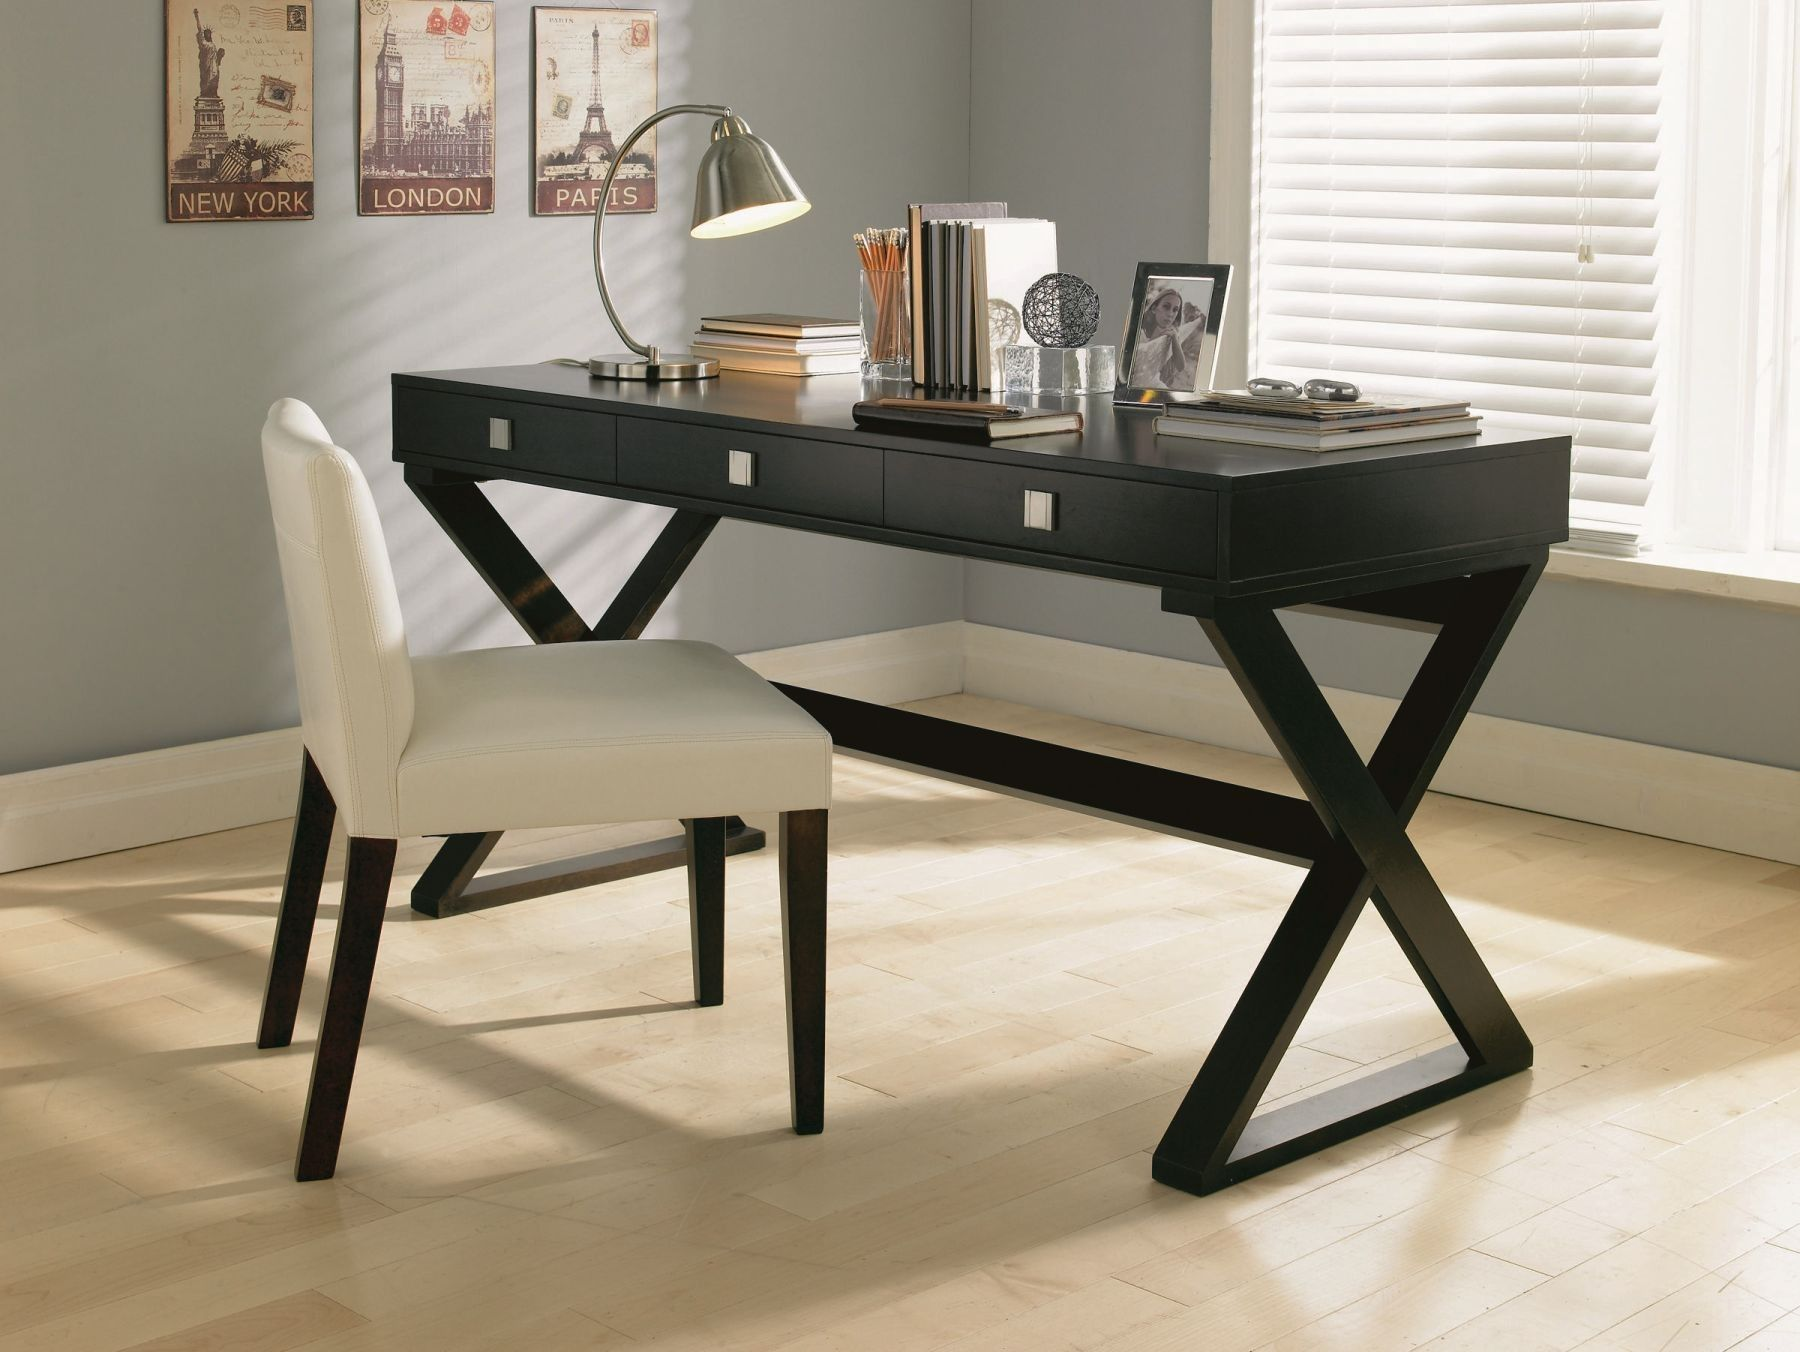 Furniture Marvelous Black Long Wood Table With Chic White